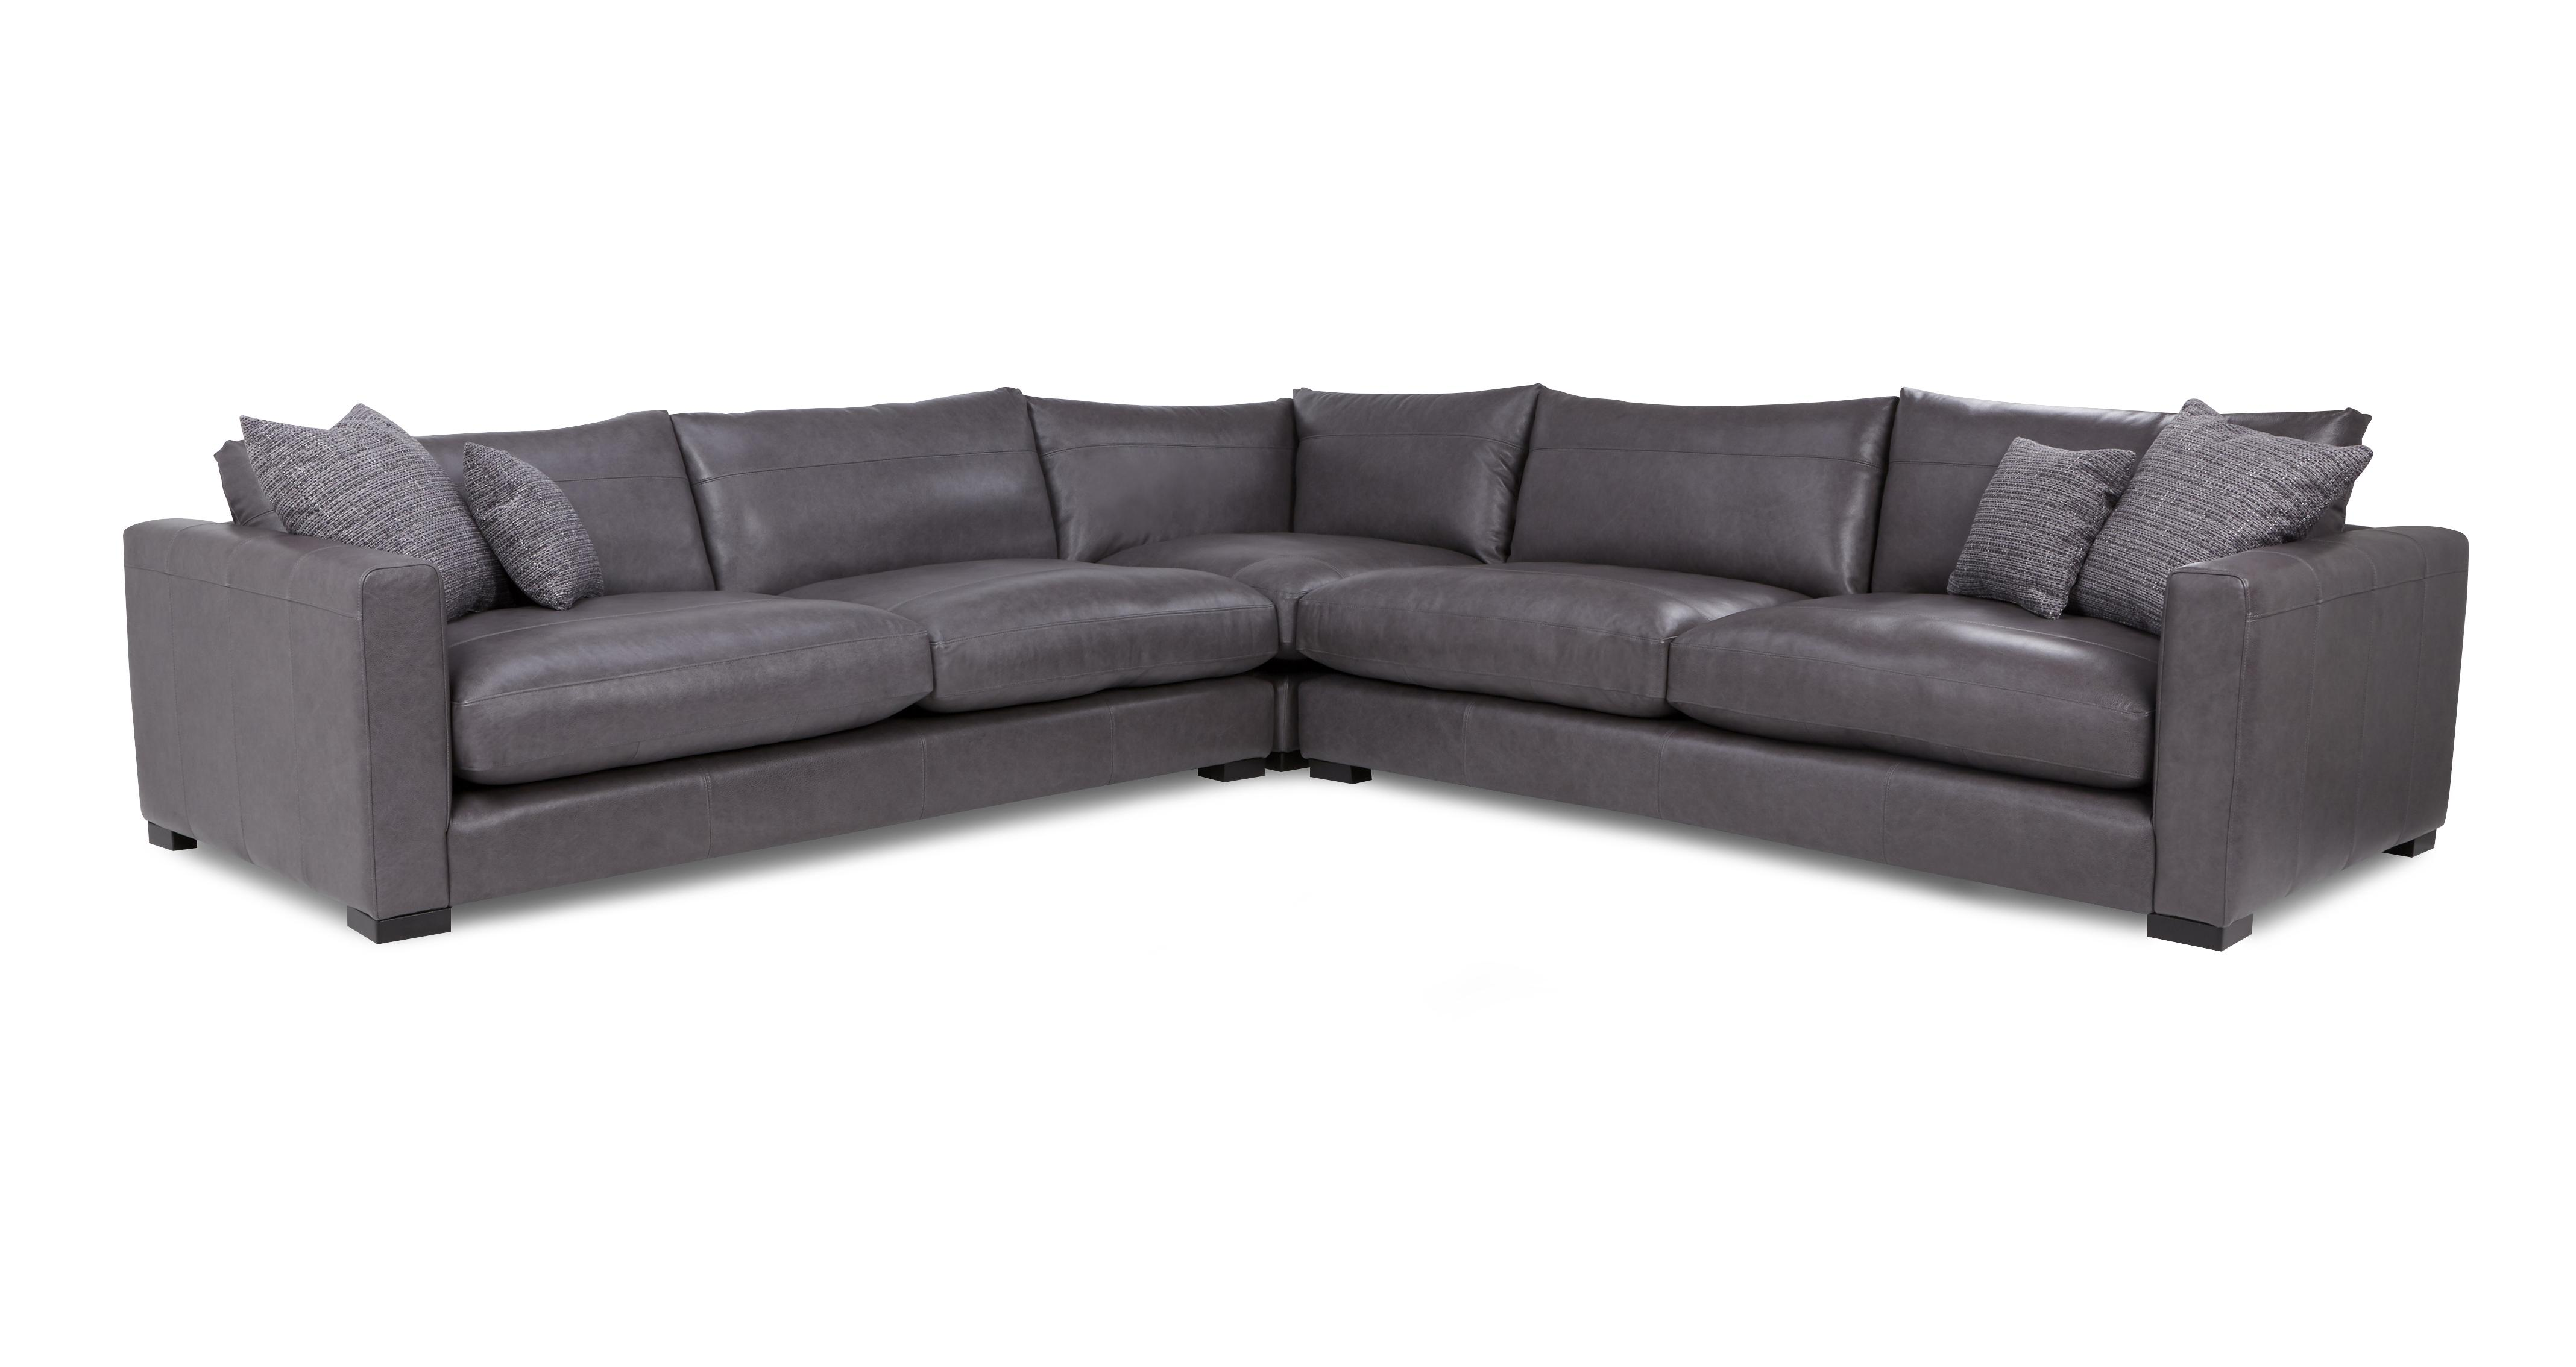 Dillon Leather Large Corner Sofa Dfs